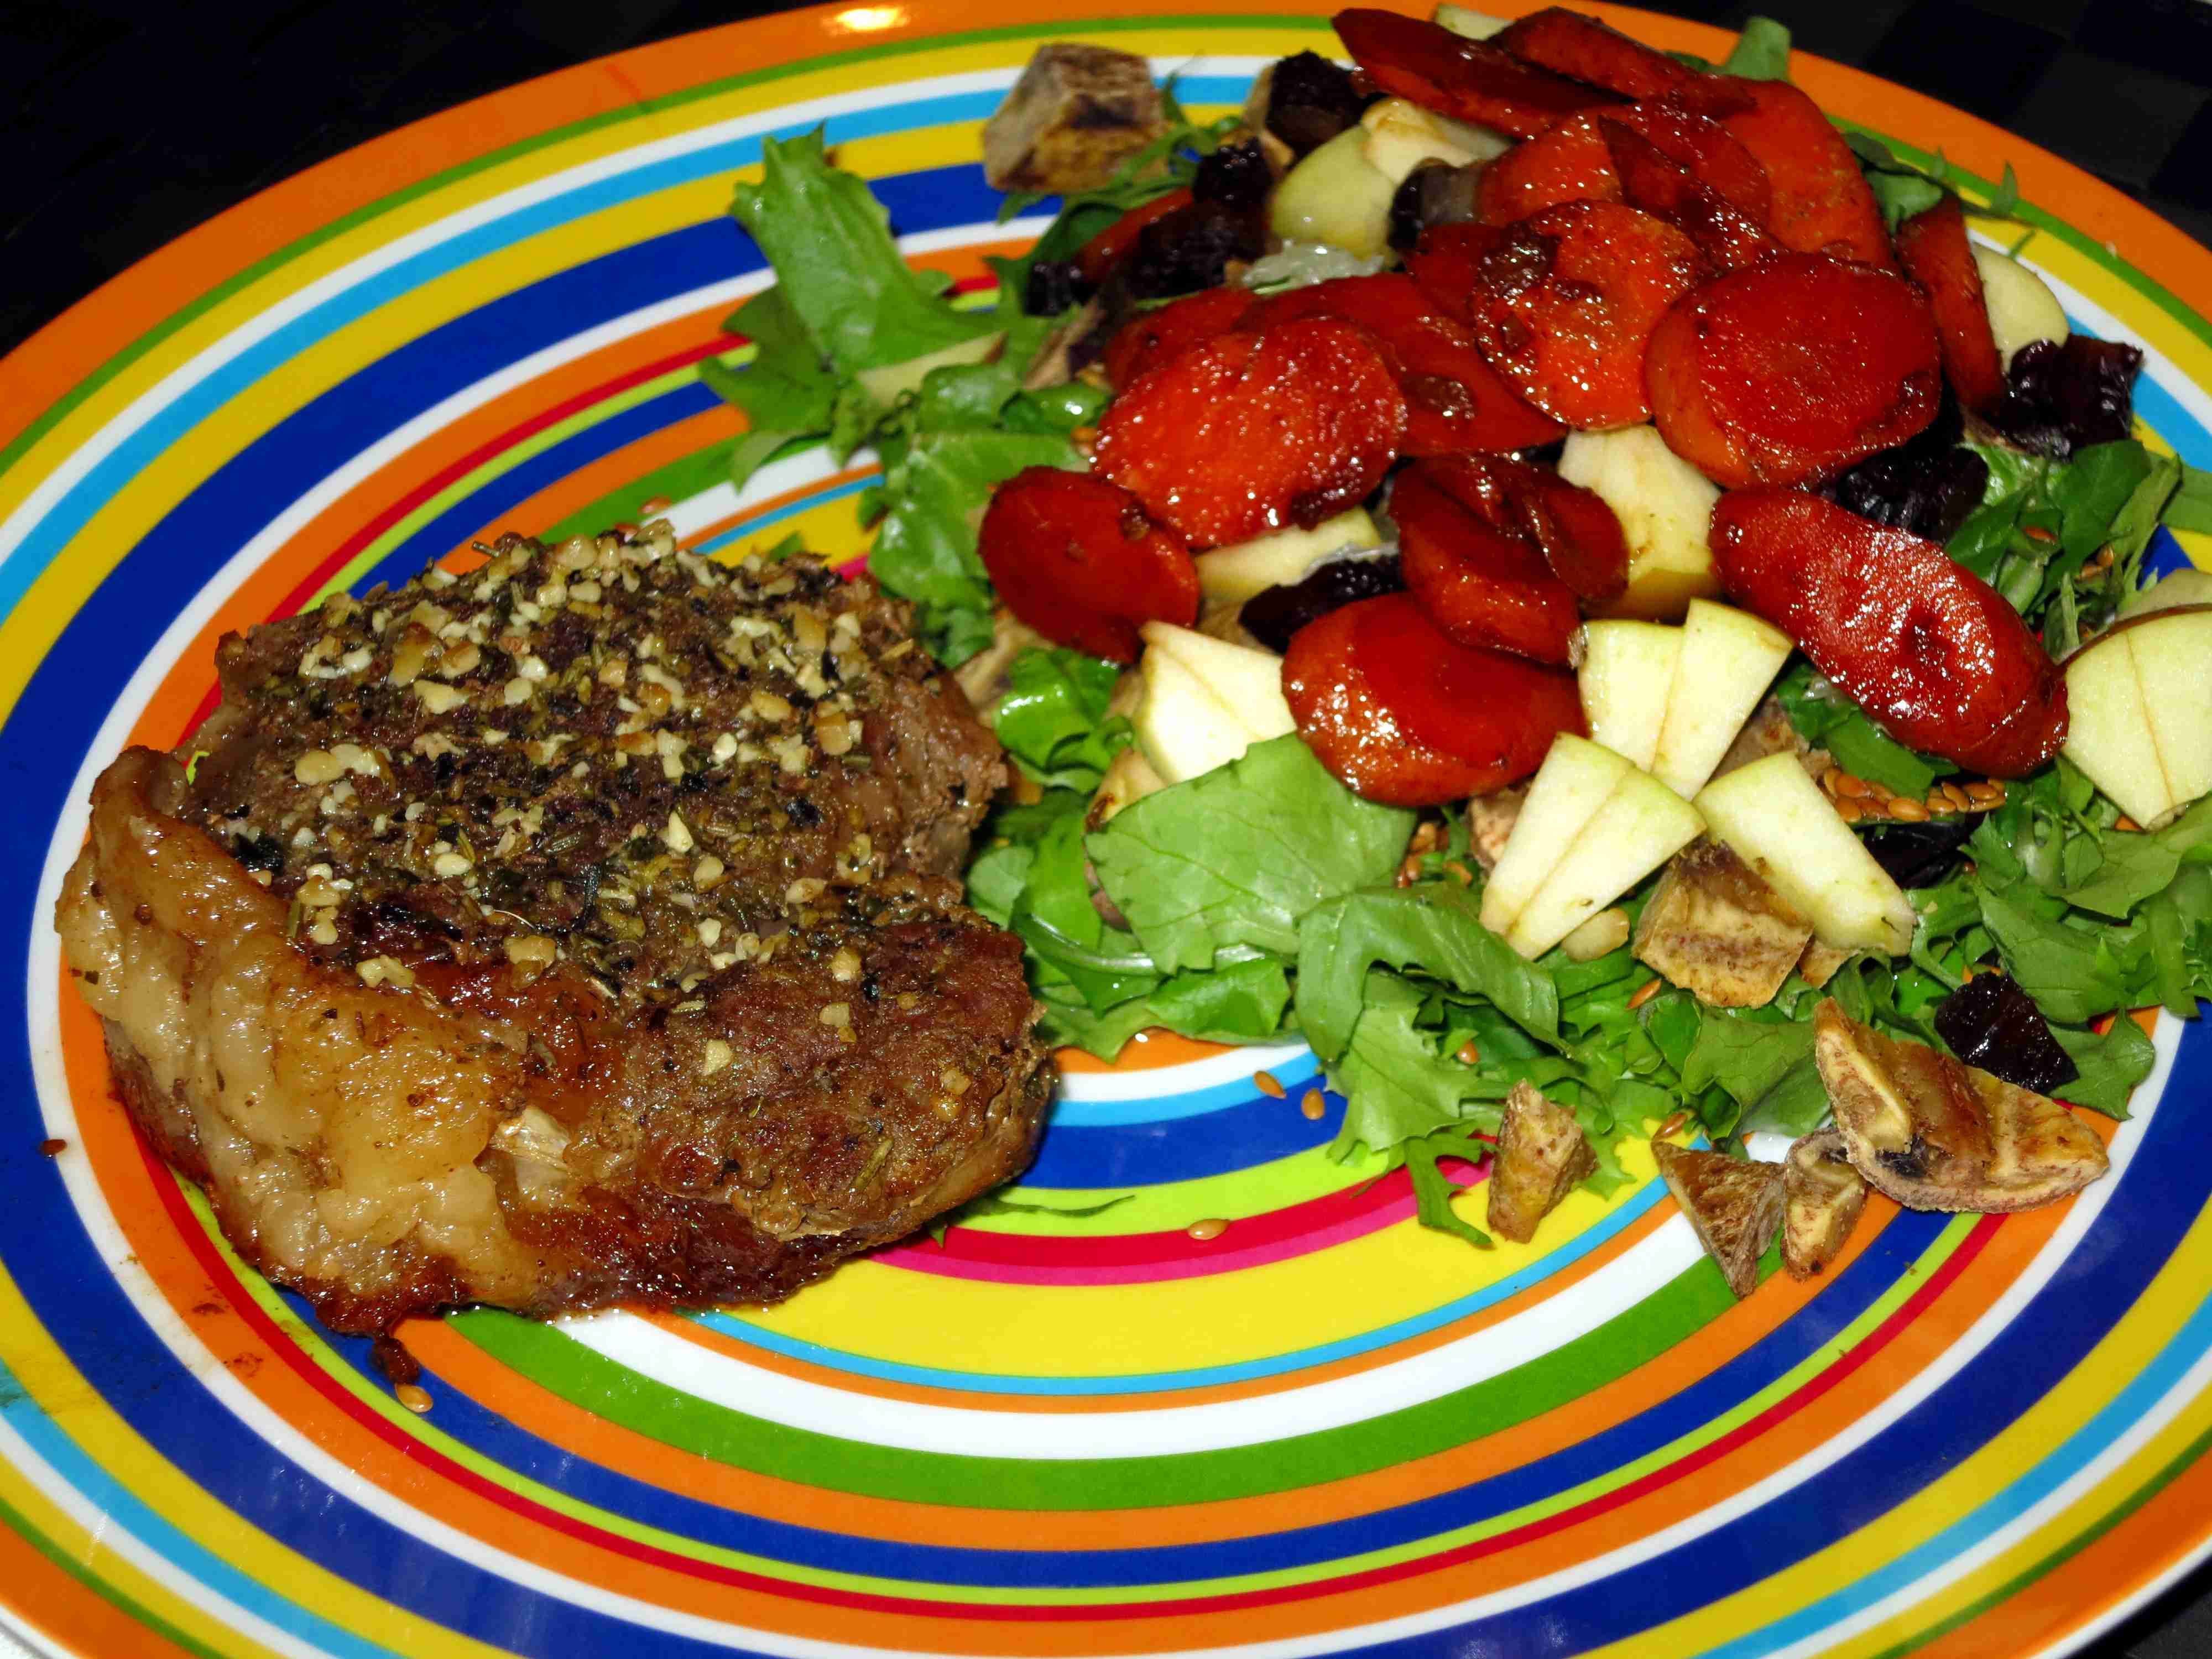 SteakAndSalad